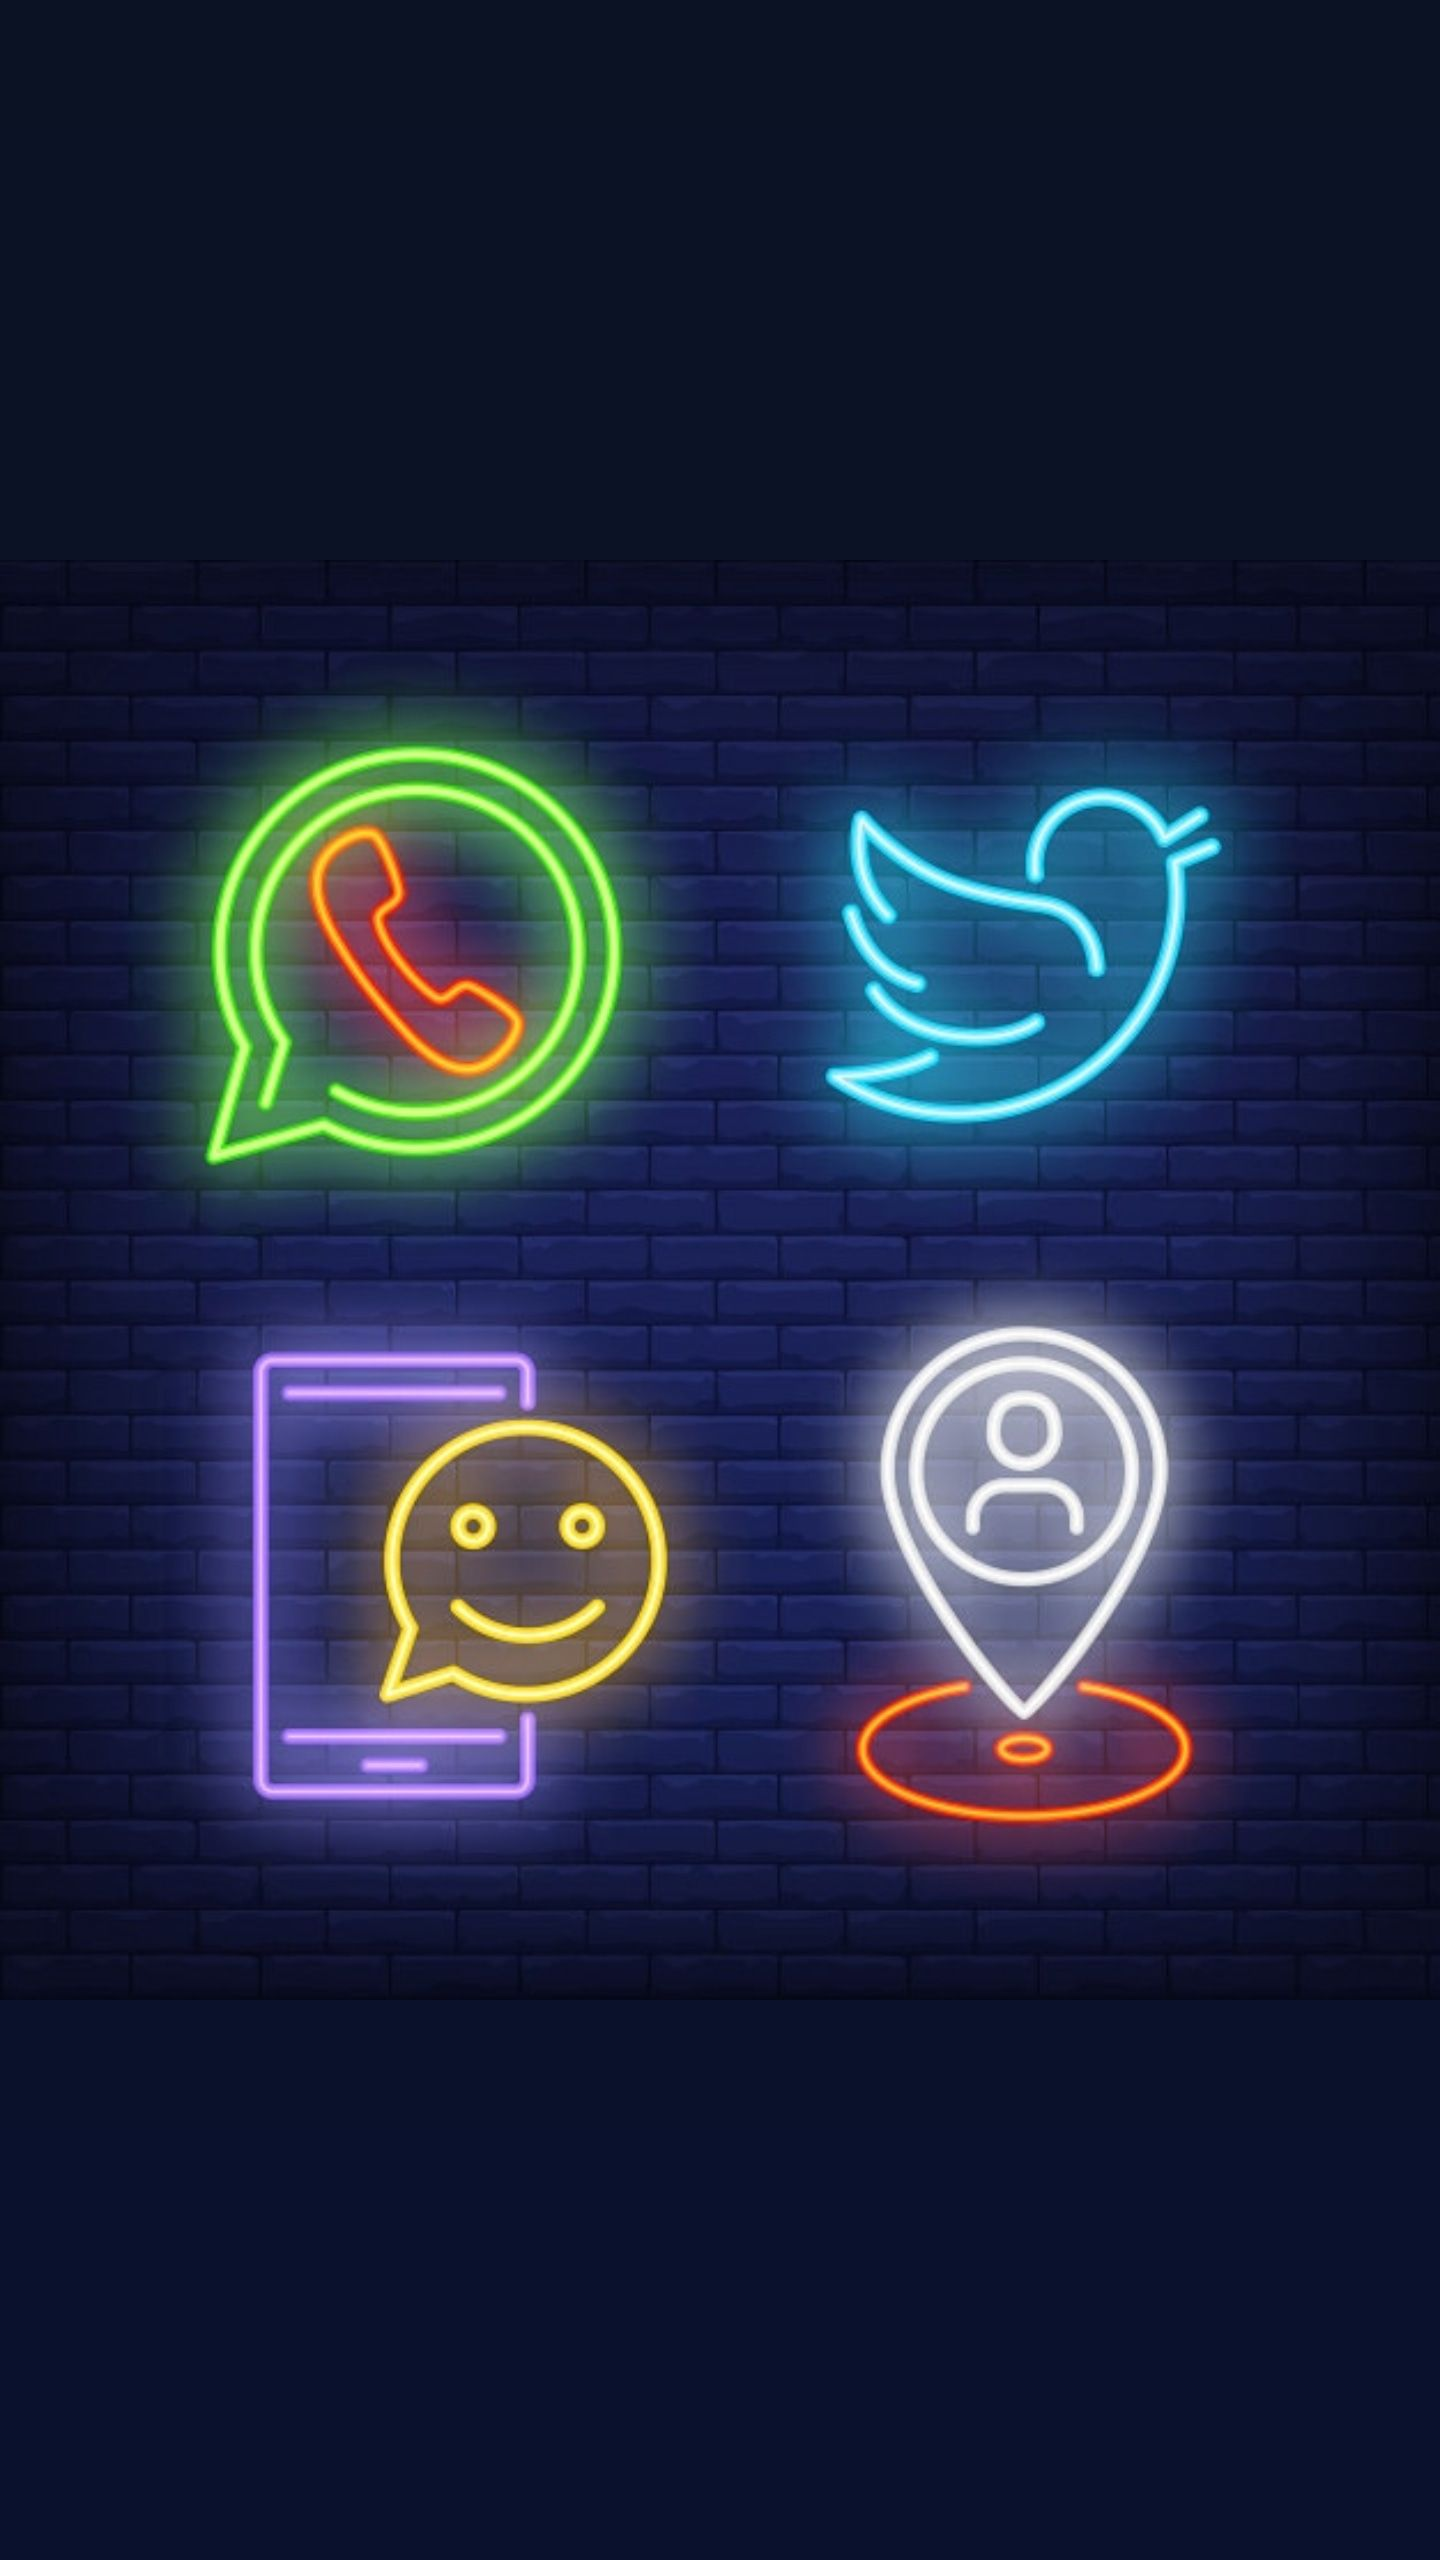 App Store Icon Aesthetic Neon